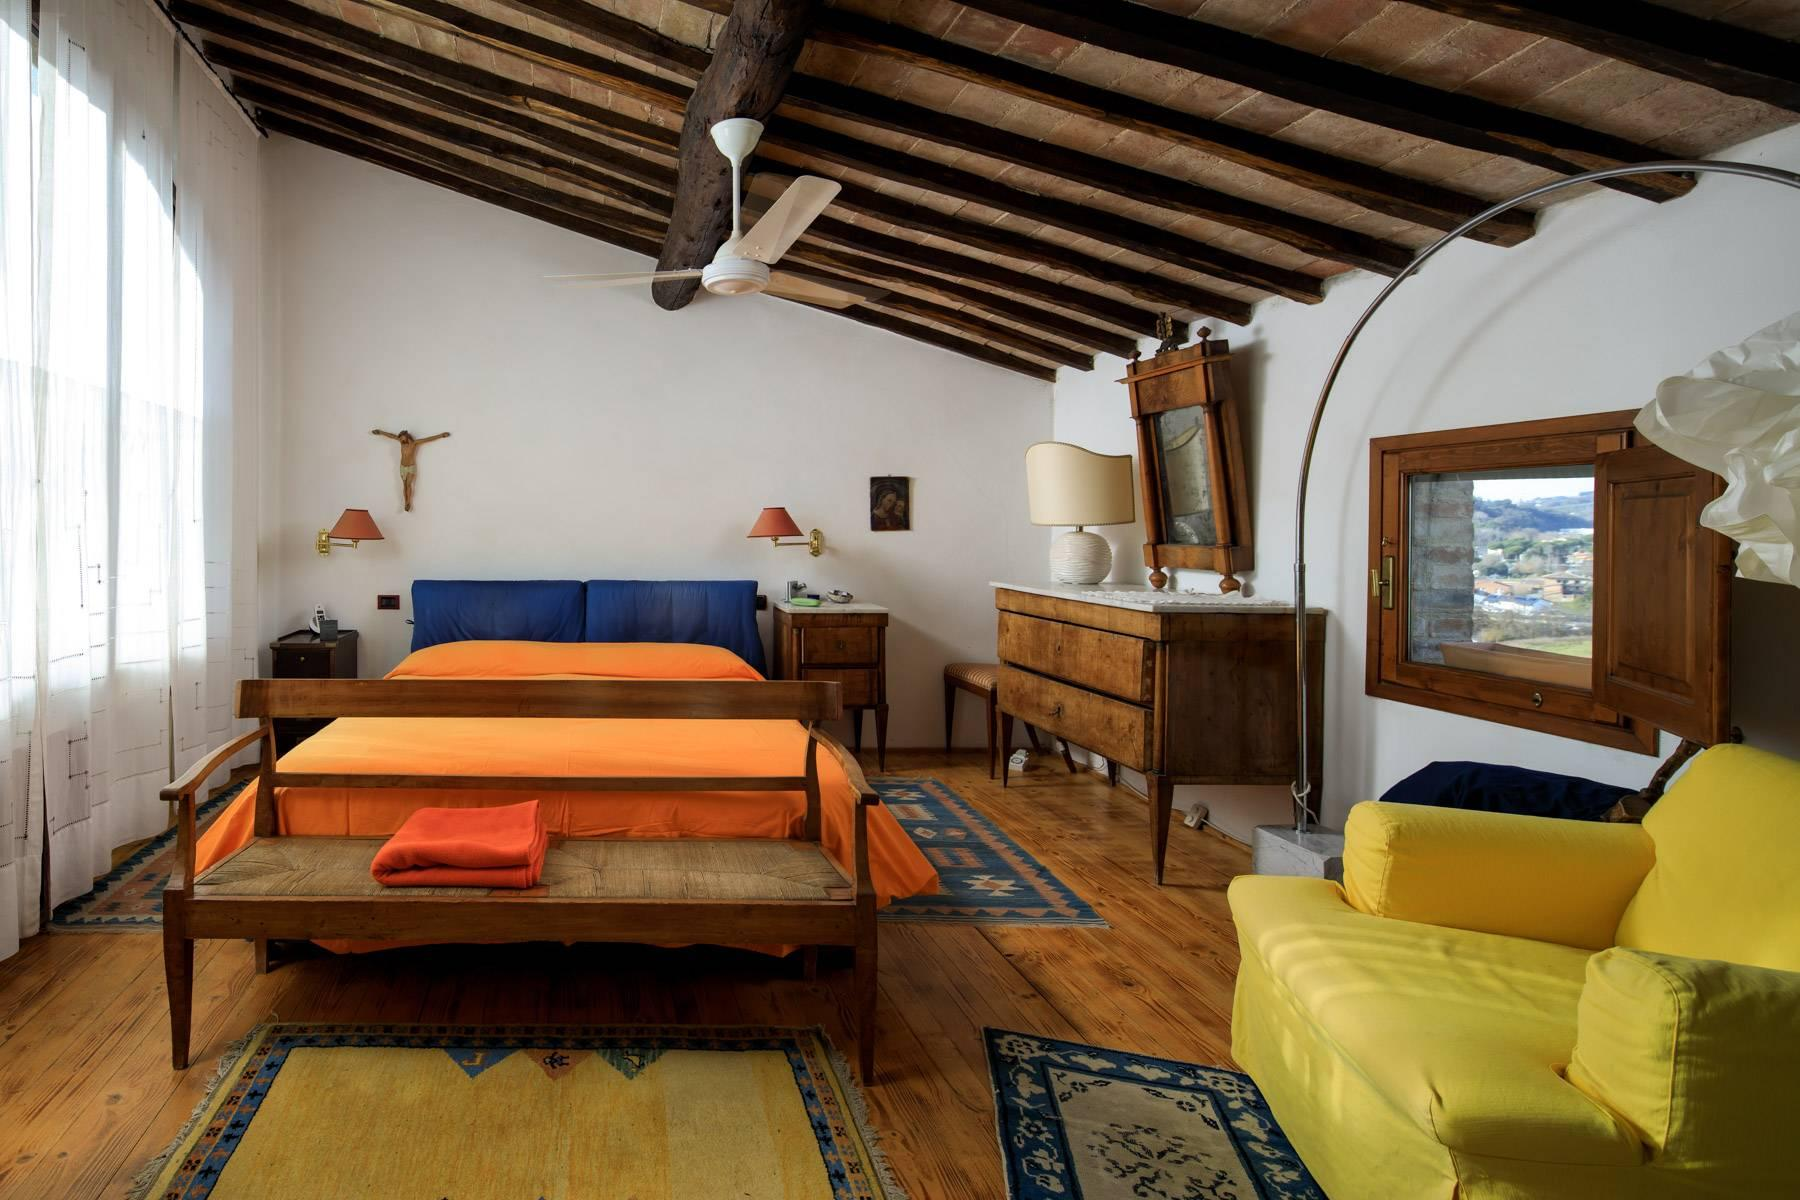 Enchanting farmhouse with agriturismo on the outskirts of Siena - 20